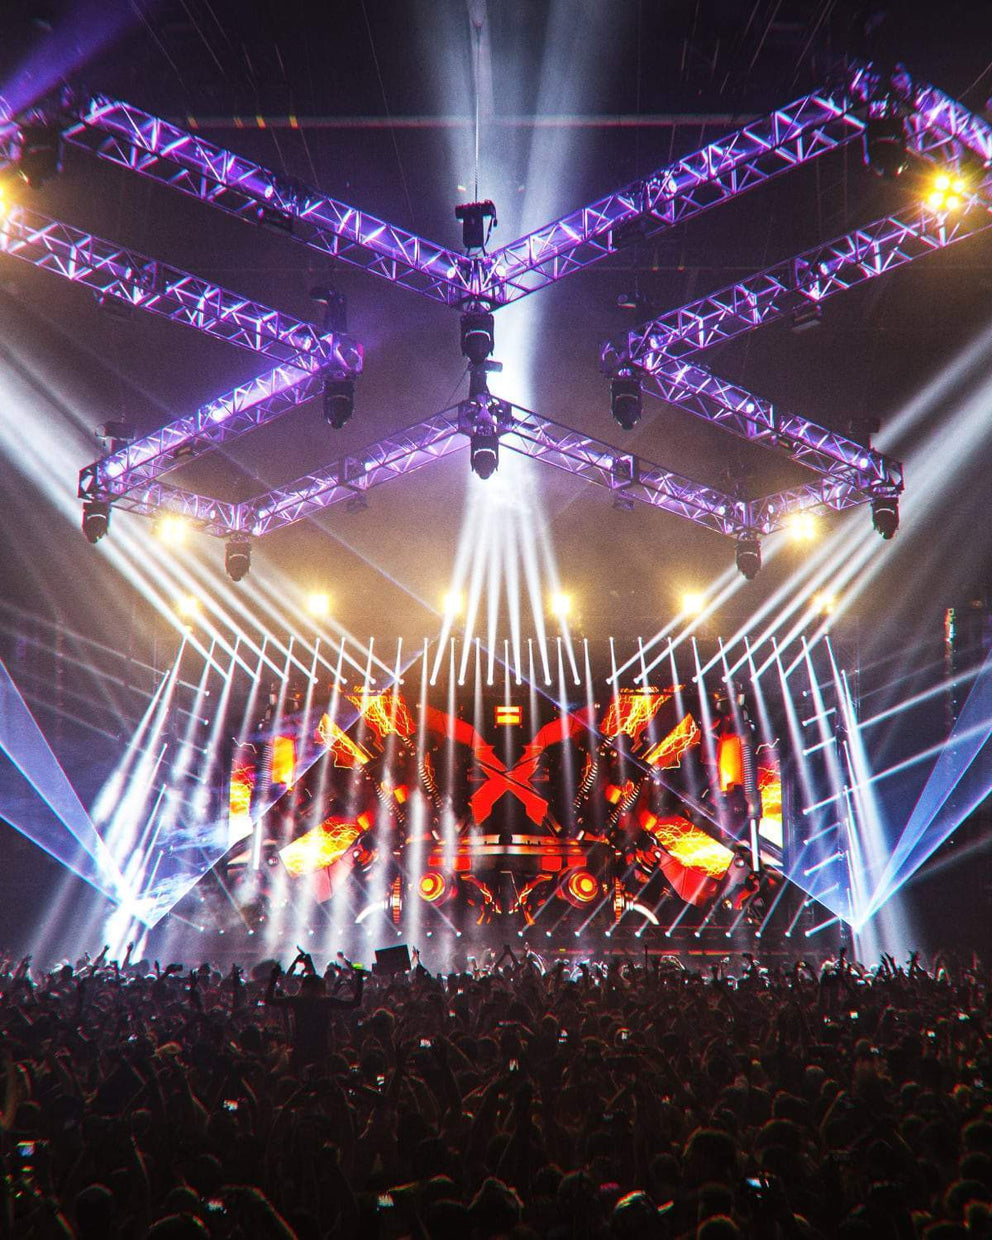 Excision 2018 Tour Featuring The Paradox - New York, NY 03/03